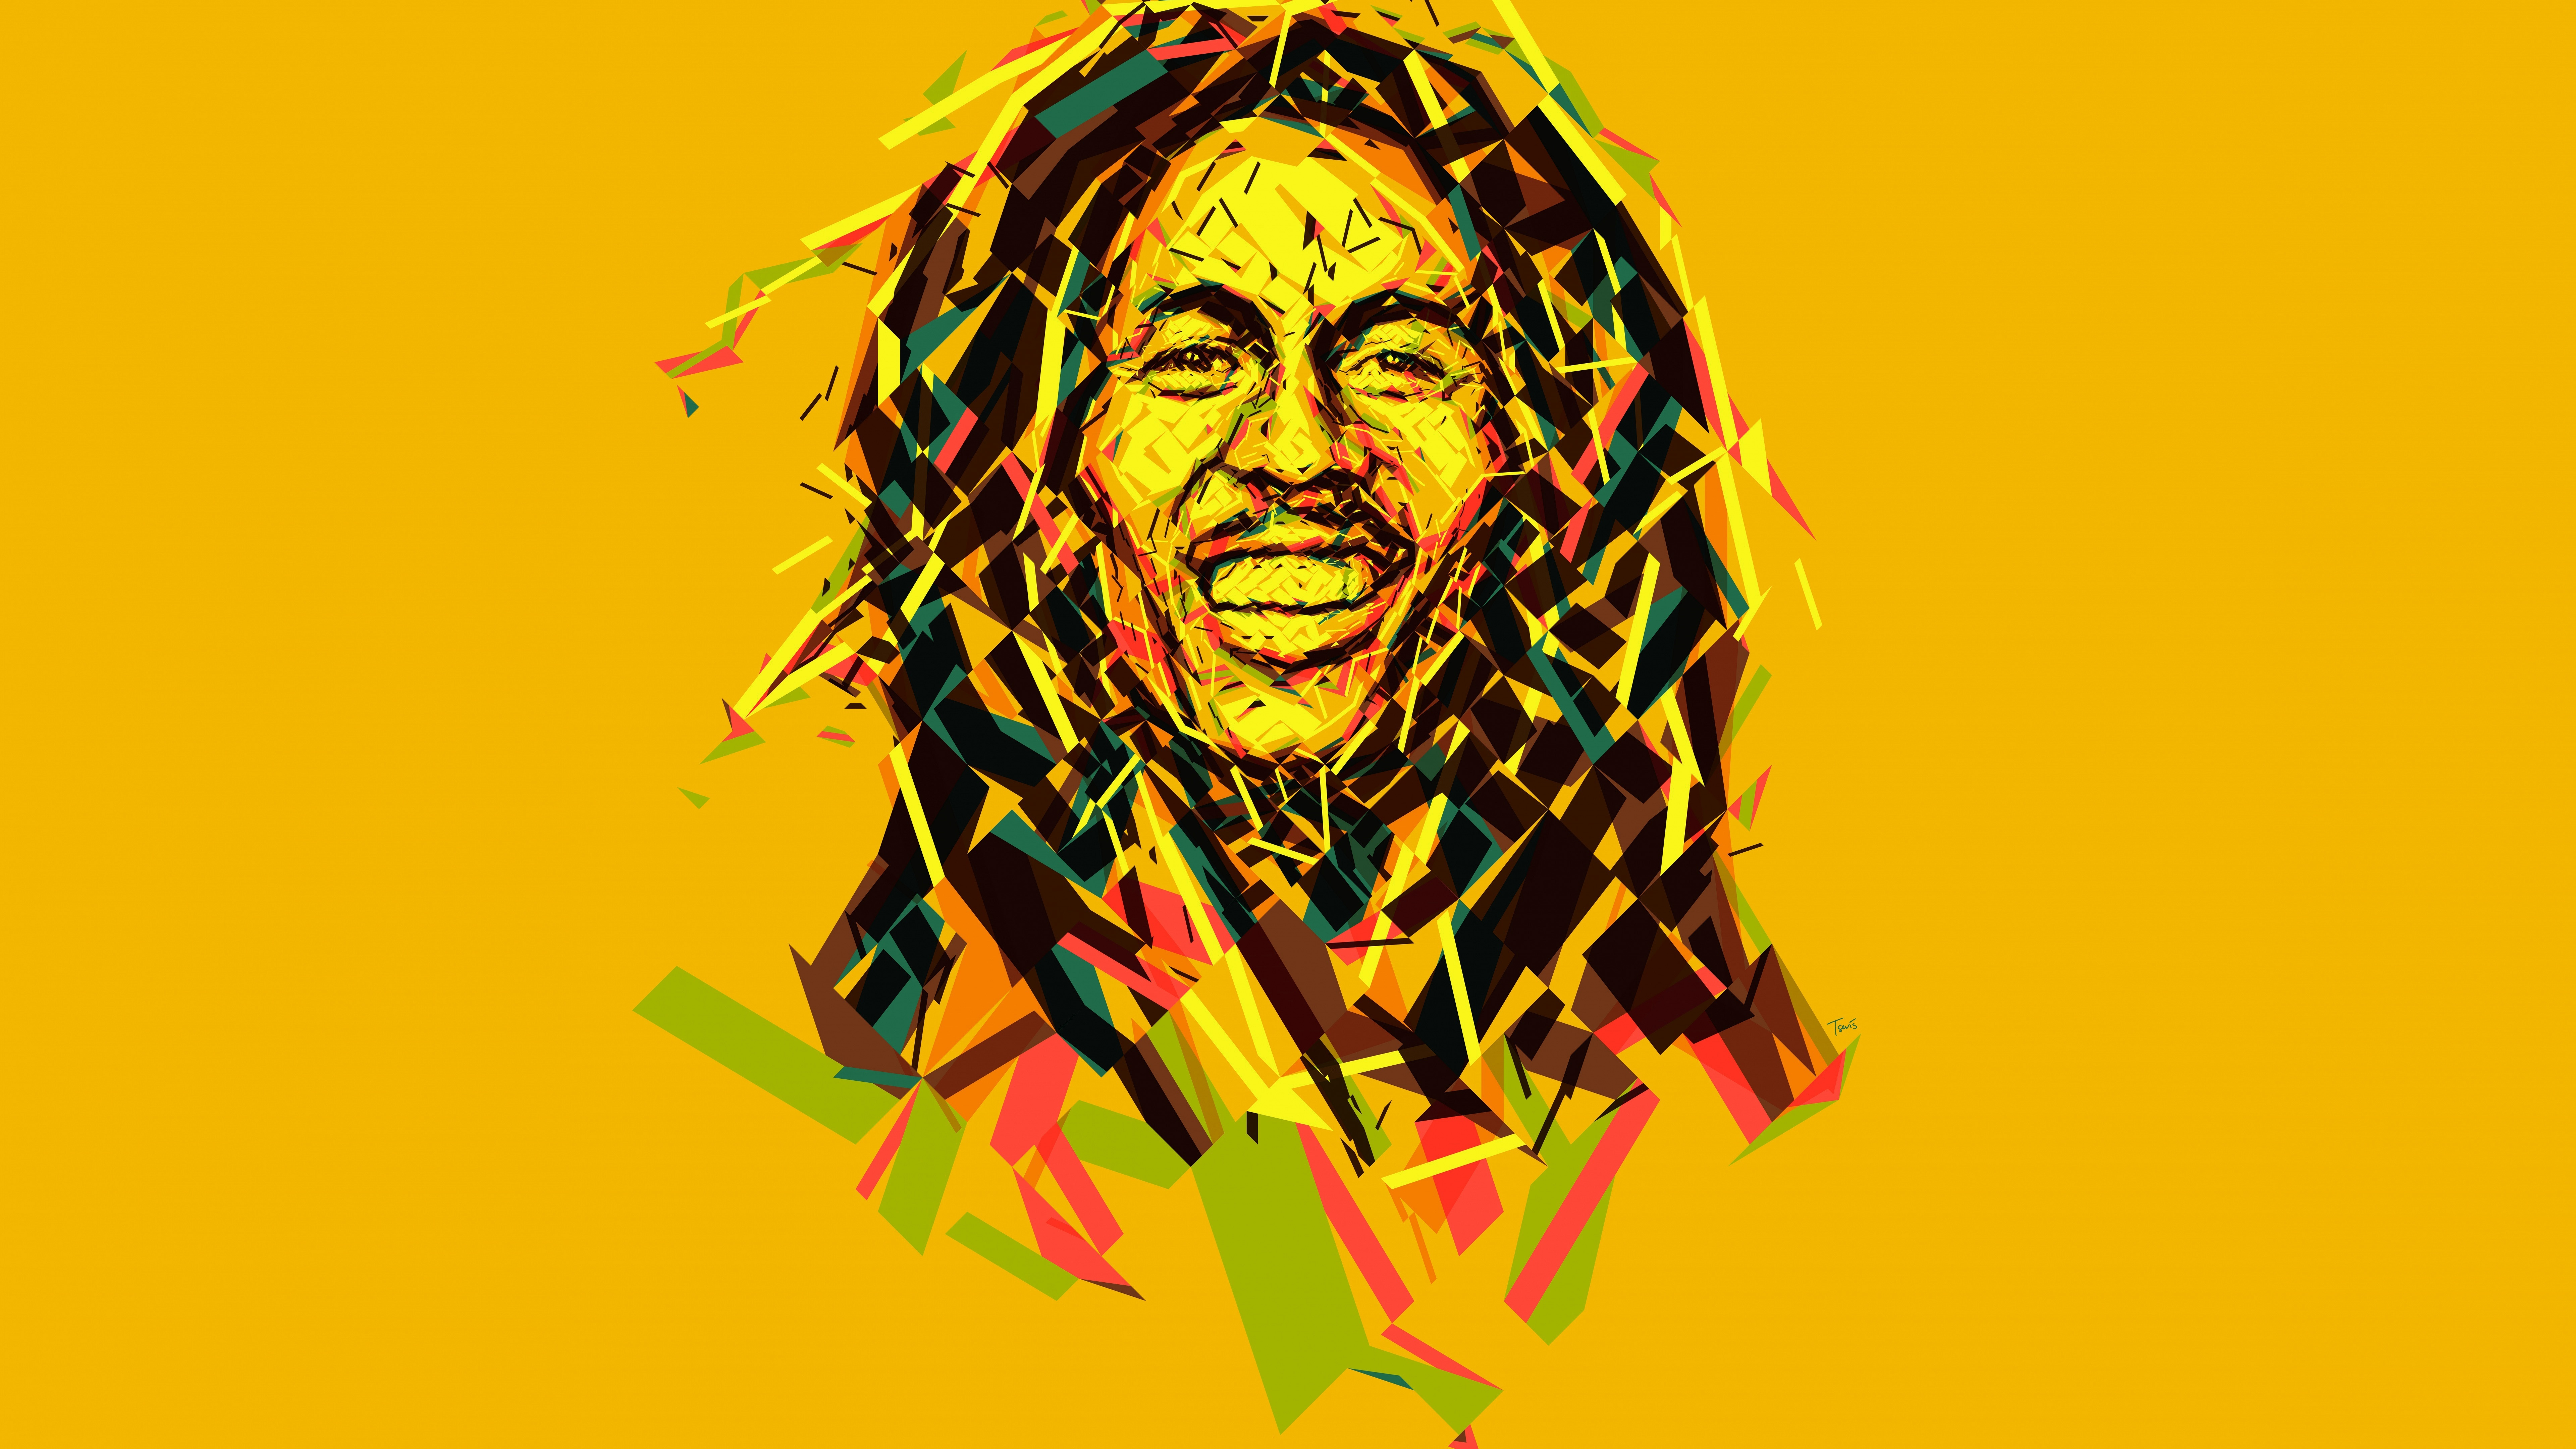 bob-marley-abstract-artwork-8k-qv.jpg